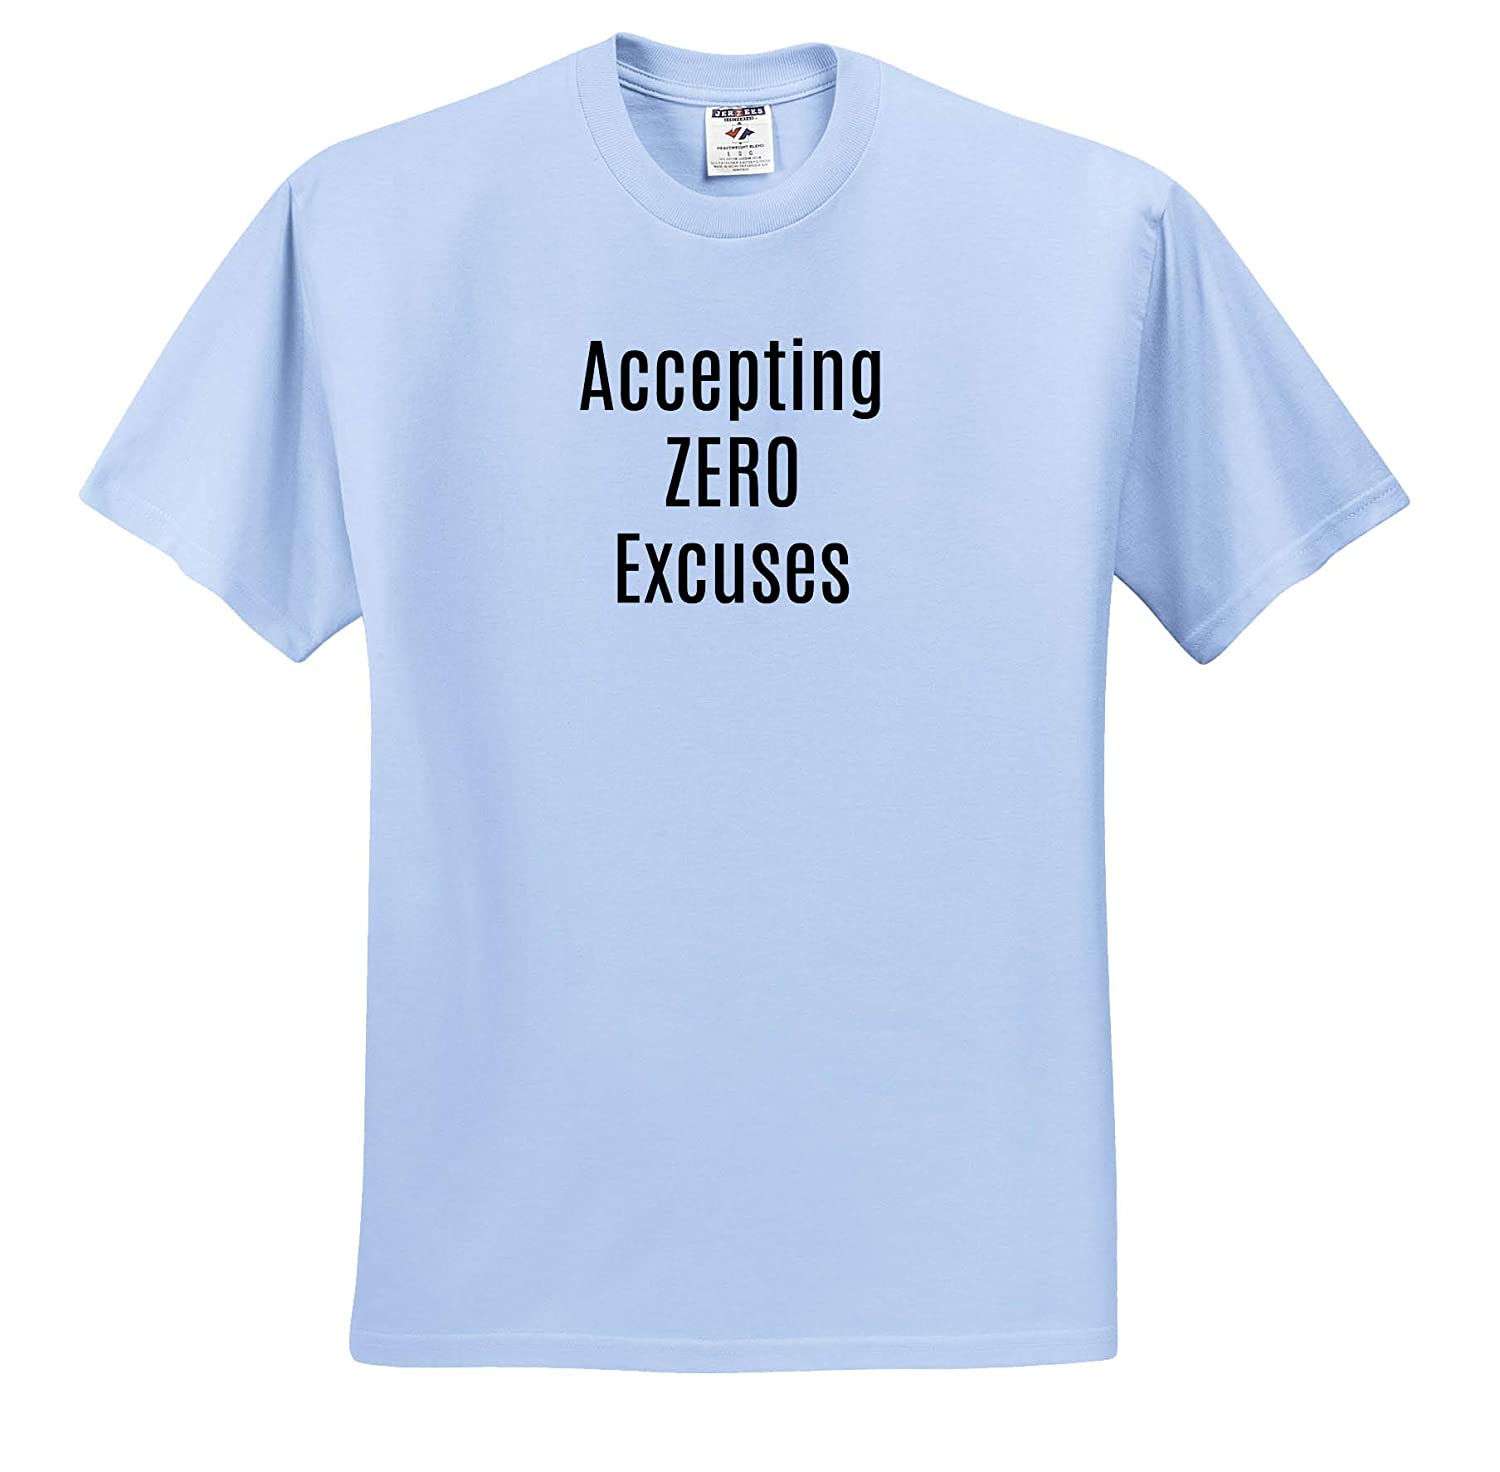 ts/_316685 Adult T-Shirt XL 3dRose Carrie Merchant Image Image of Accepting Zero Excuses